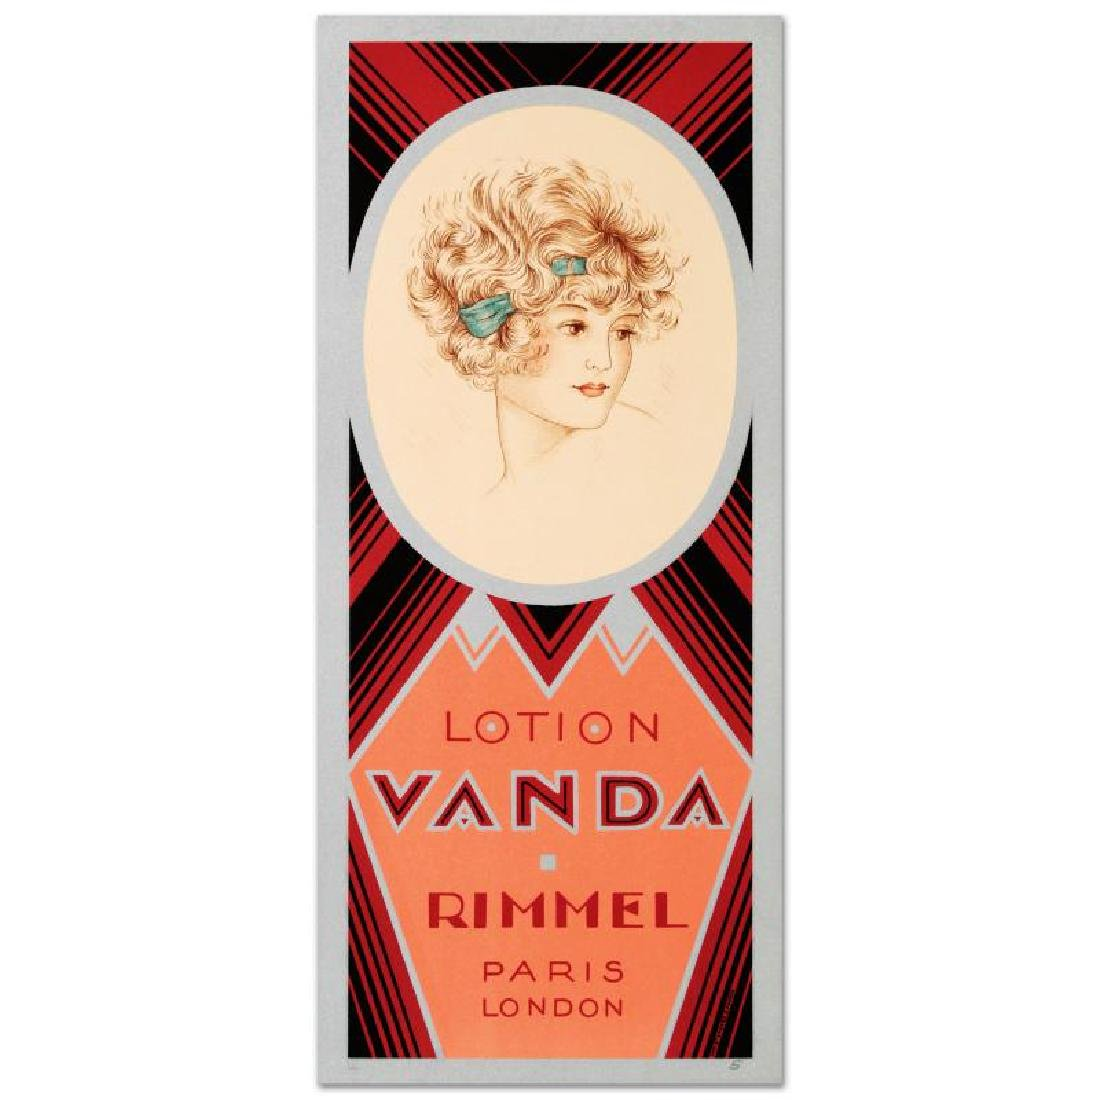 """Rimmel-Lotion Vanda"" Hand Pulled Lithograph by the RE"